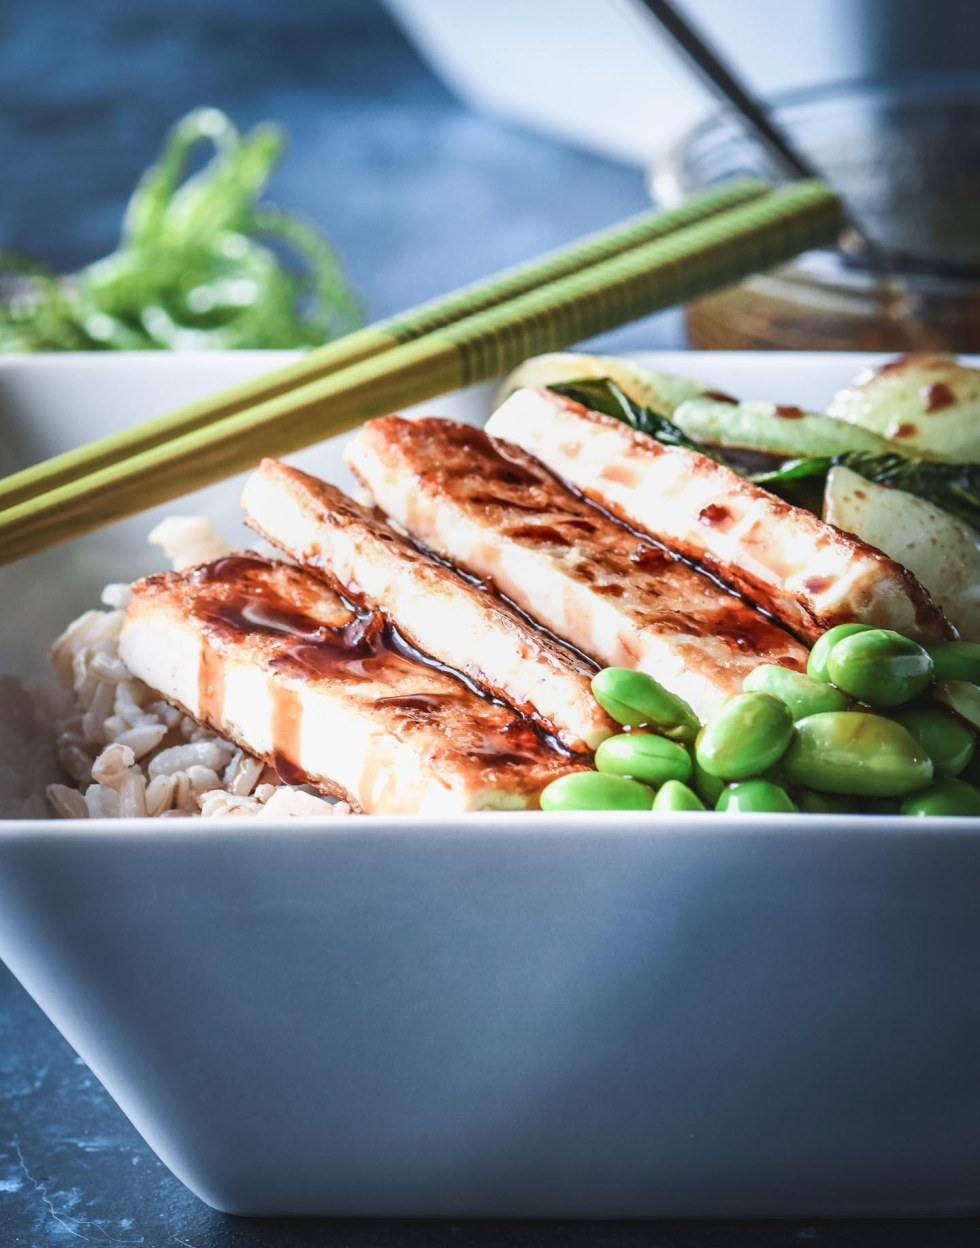 Crispy tofu rice bowl topped with bok choy and edamame then drizzled with teriyaki glaze.